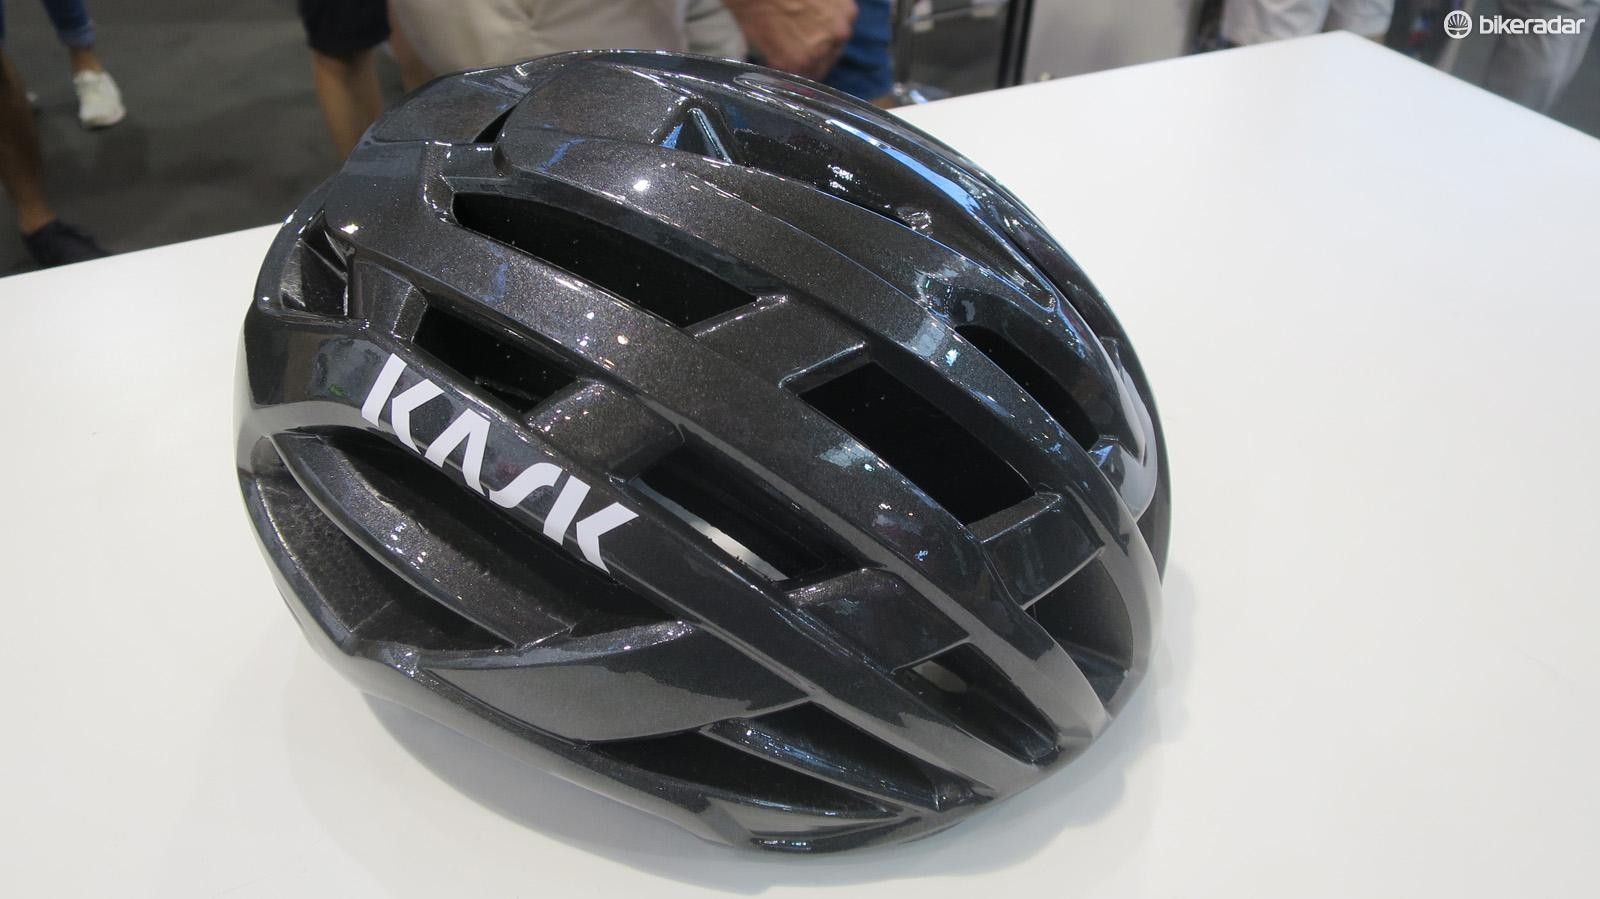 Kask's new Valegro is designed for comfort and lightweight